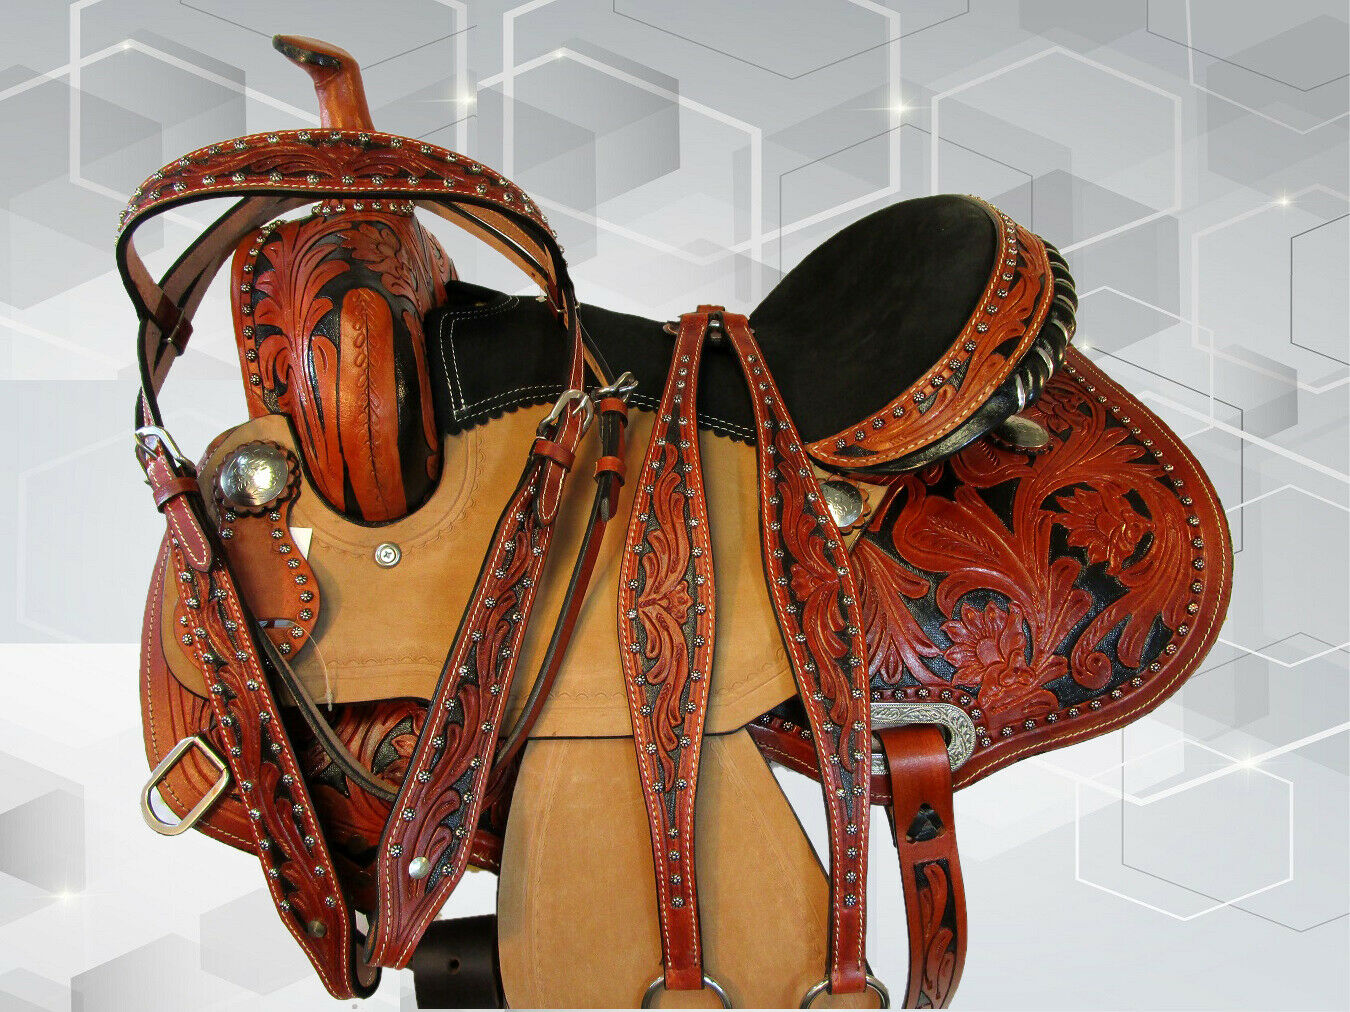 Caballo árabe Western Silla 15 16 Trail placer Barril De Cuero fileteado Tachuela Set